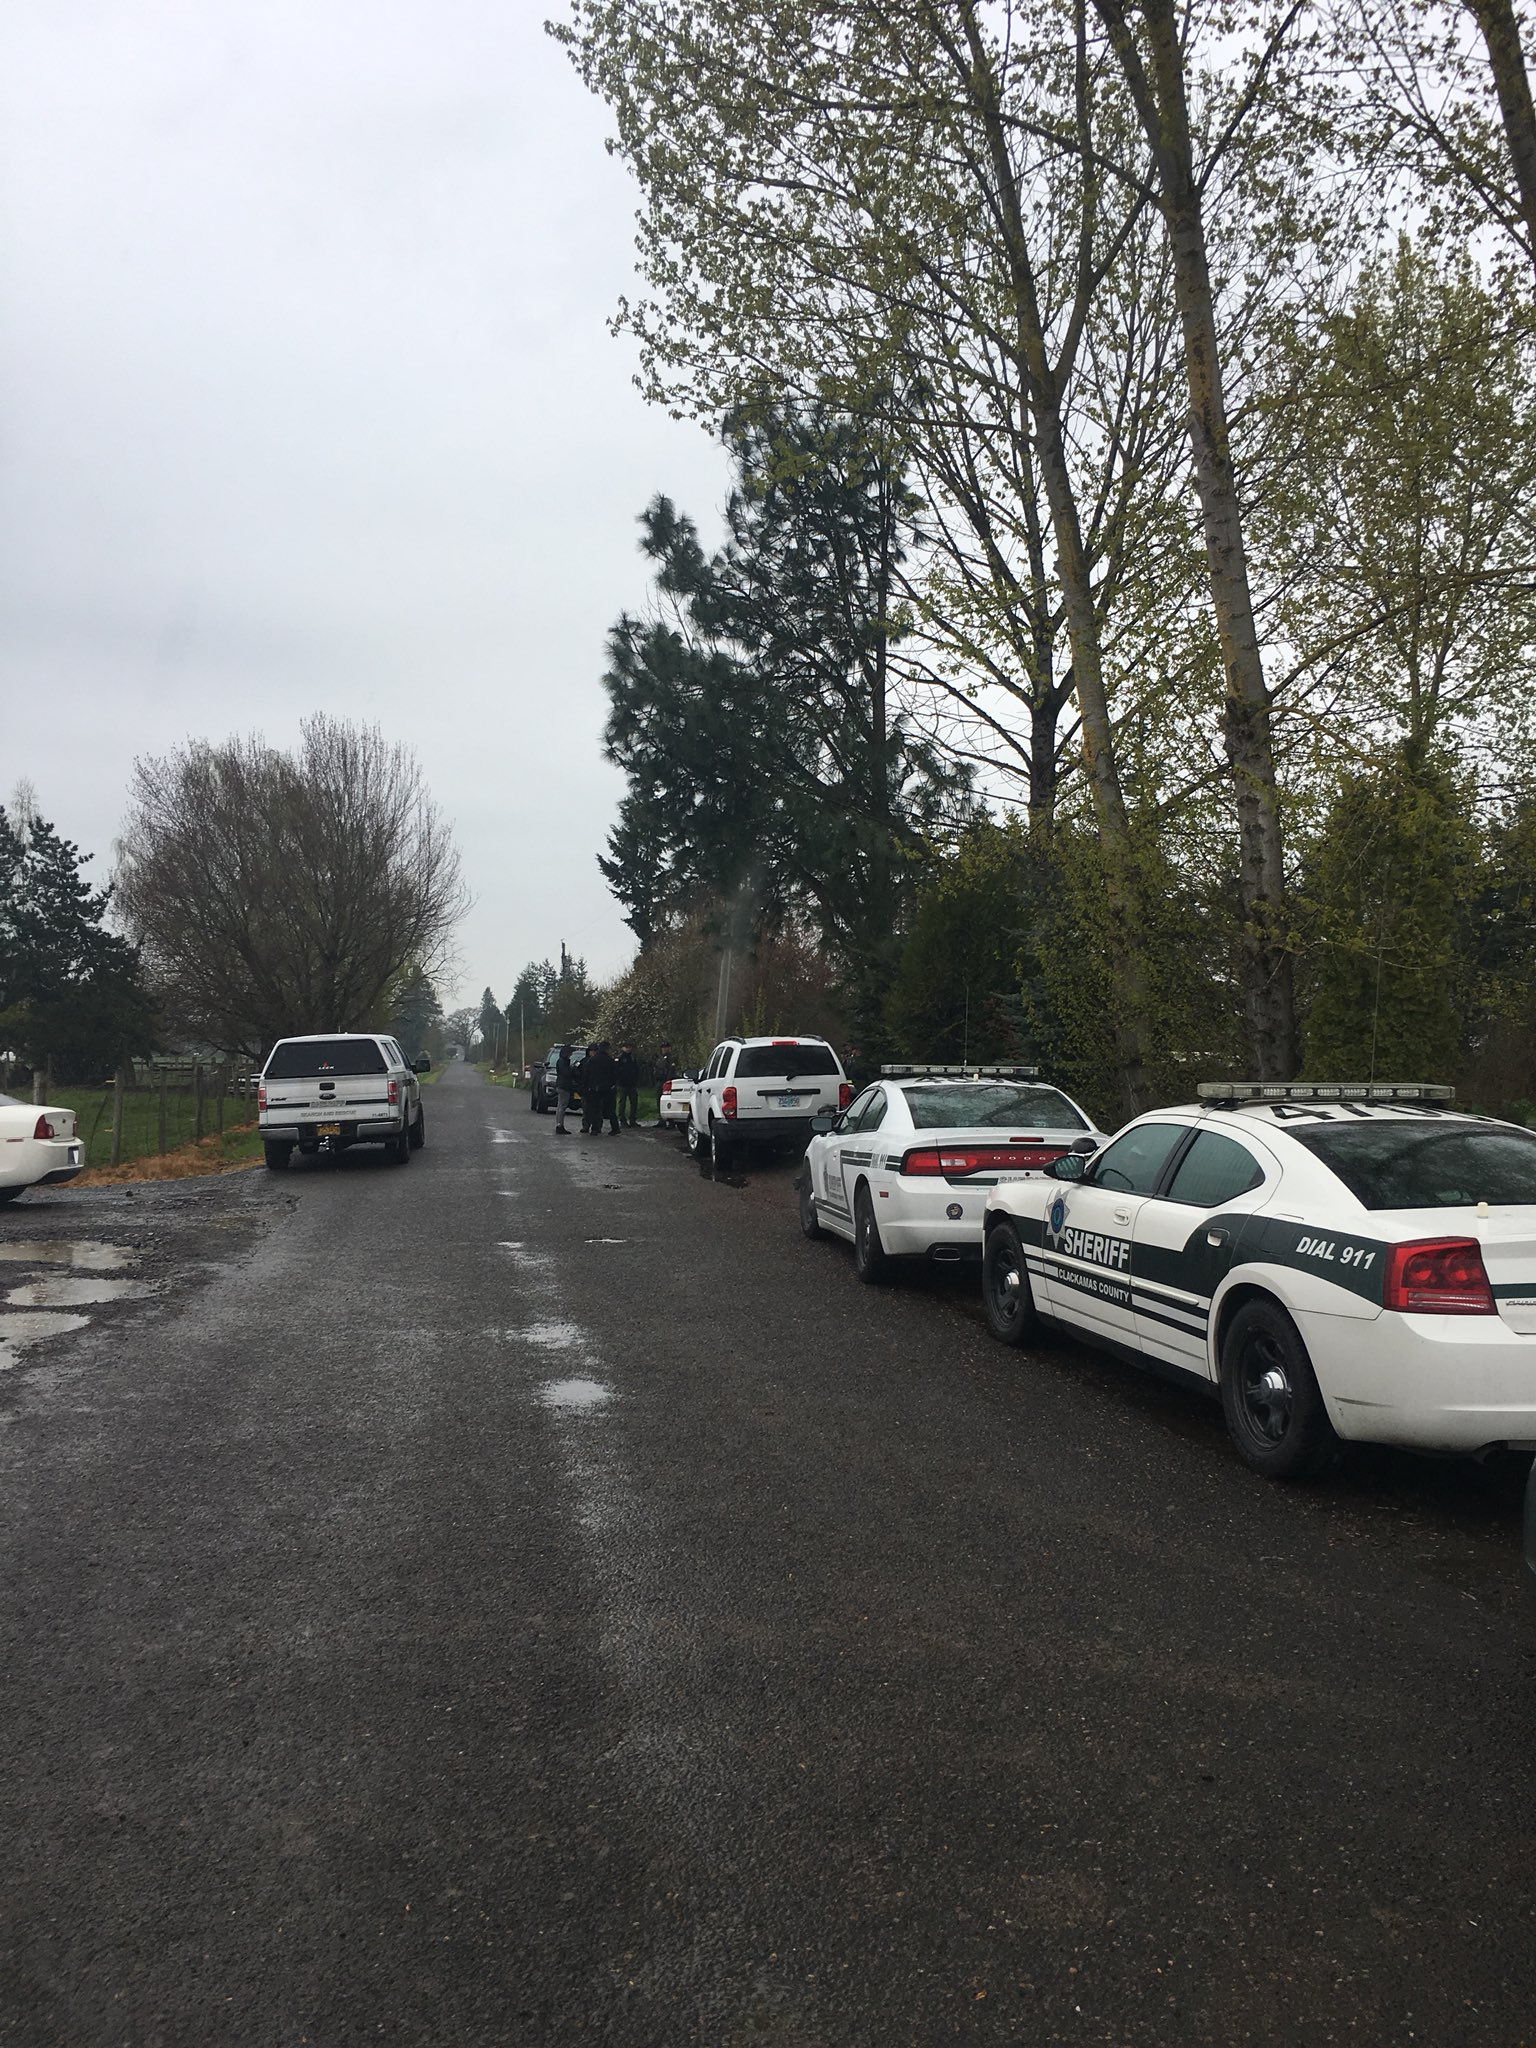 Clark County Sheriff's deputies on scene of shooting just outside Molalla (Photo courtesy Clackamas County Sheriff's Office)